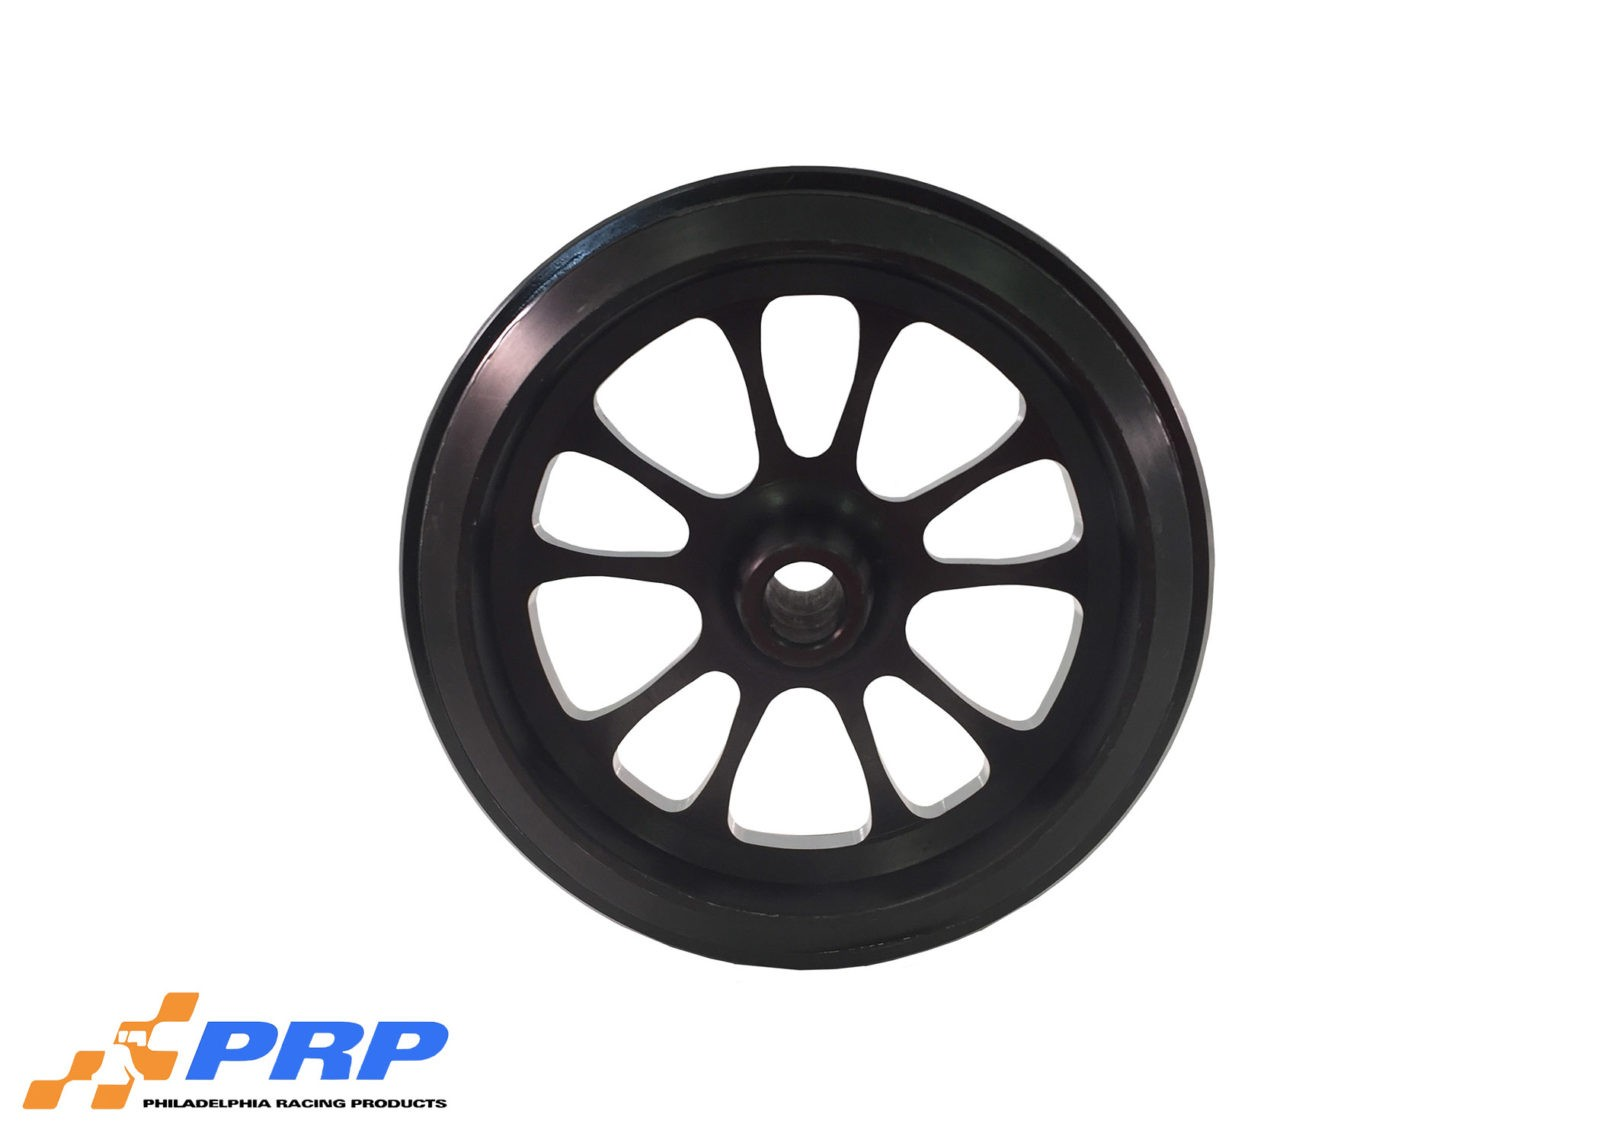 Black Anodized 10 Spoke Style Wheelie Bar Wheels made by PRP Racing Products